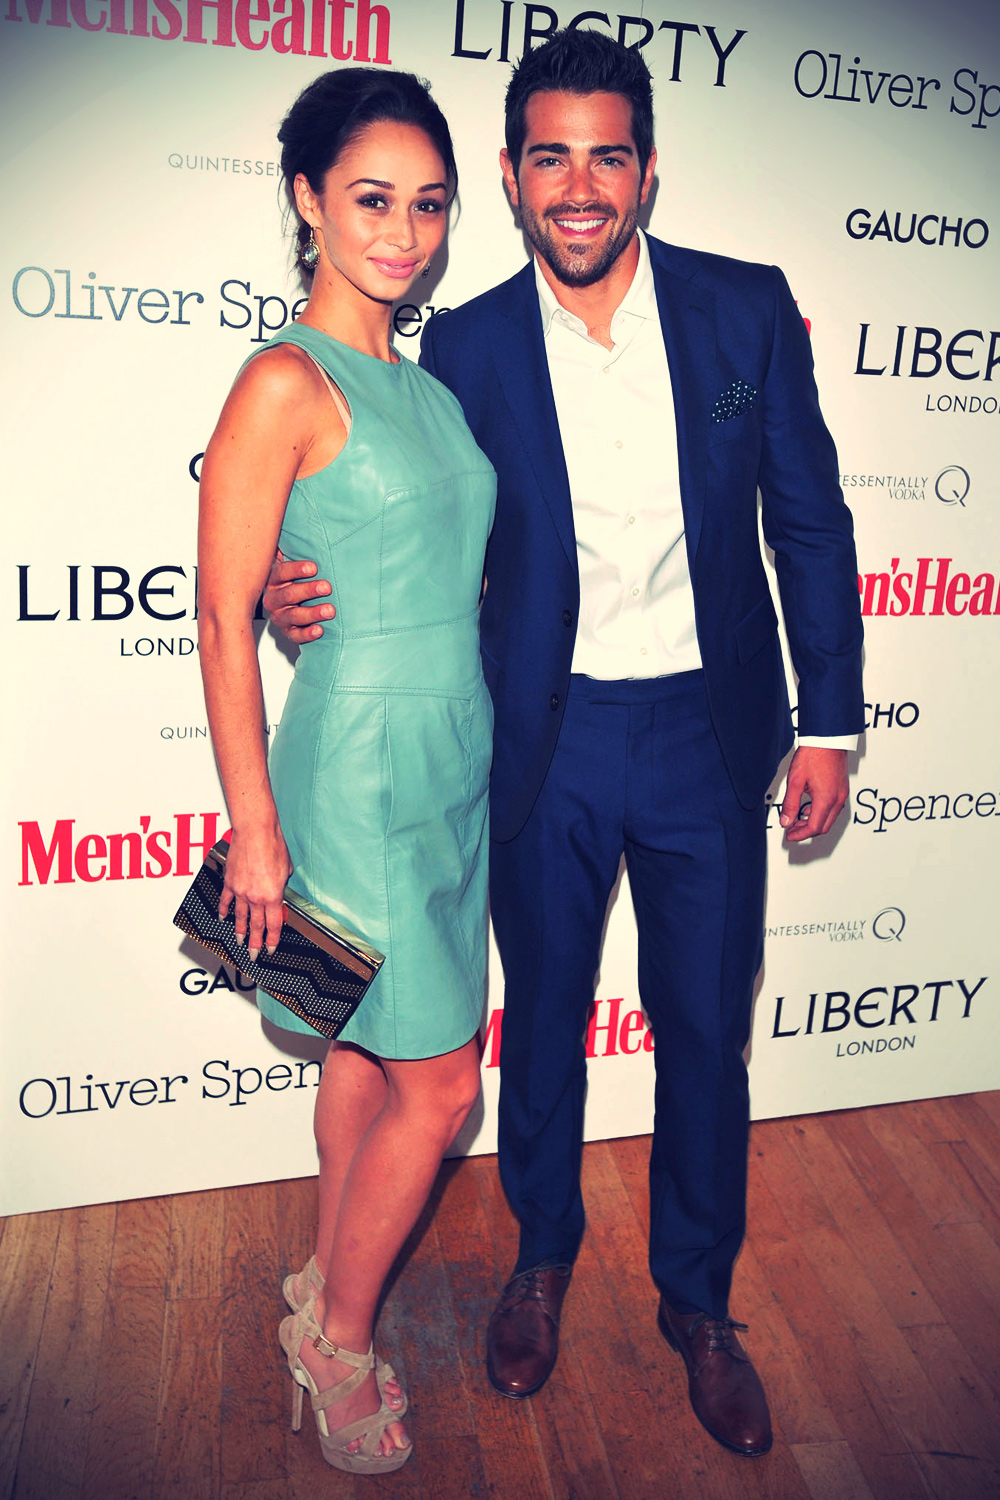 Cara Santana attends the Men's Health x Liberty x Oliver Spencer party